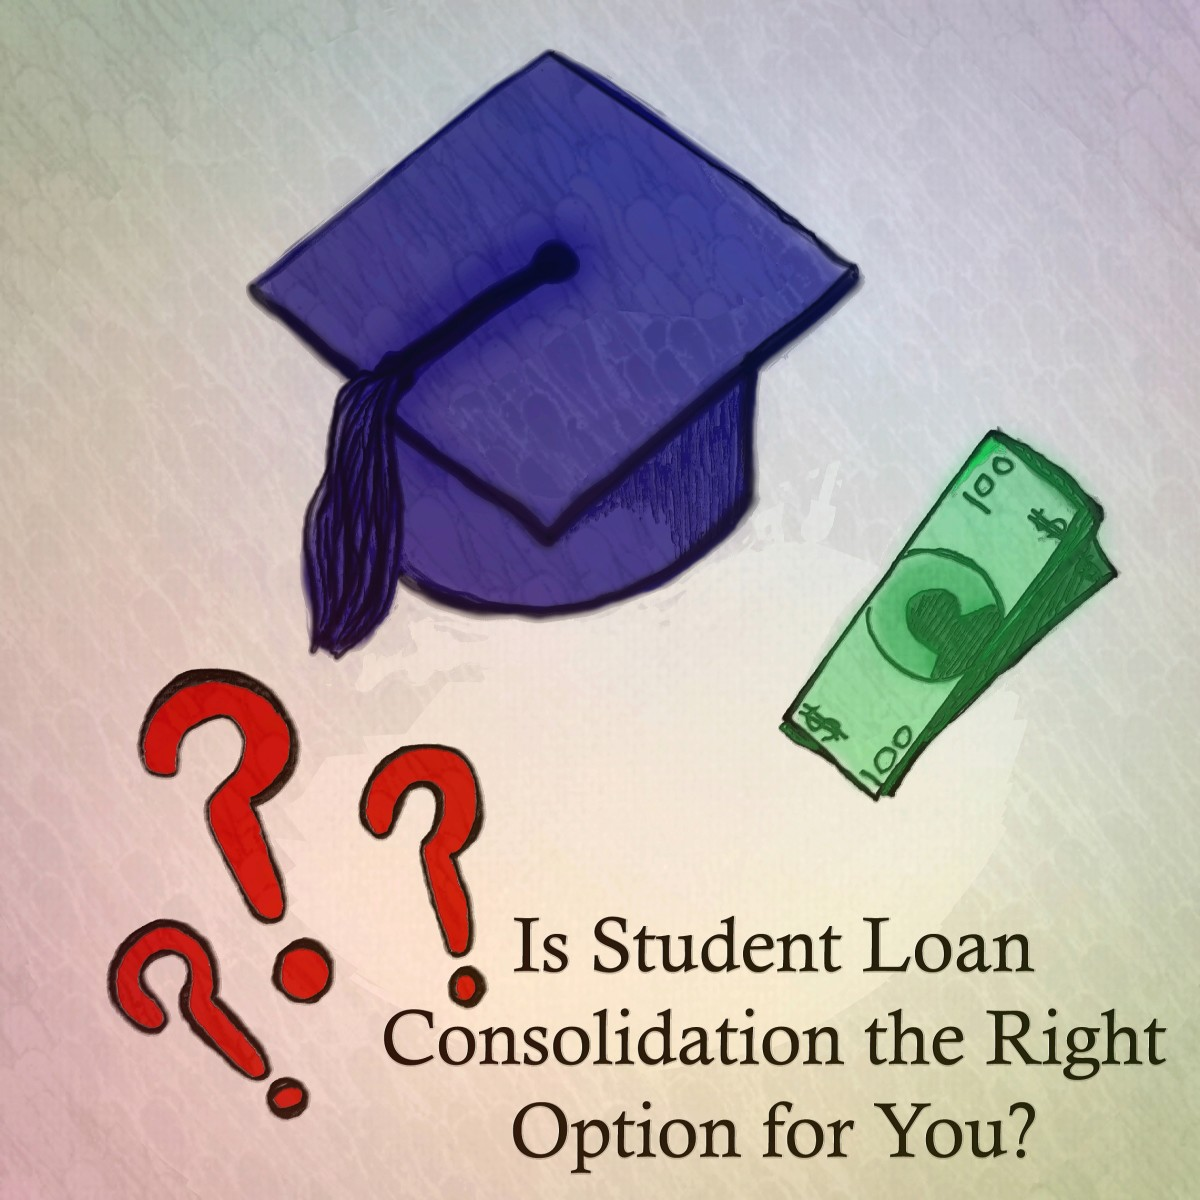 Is Student Loan Consolidation the Right Option for You?